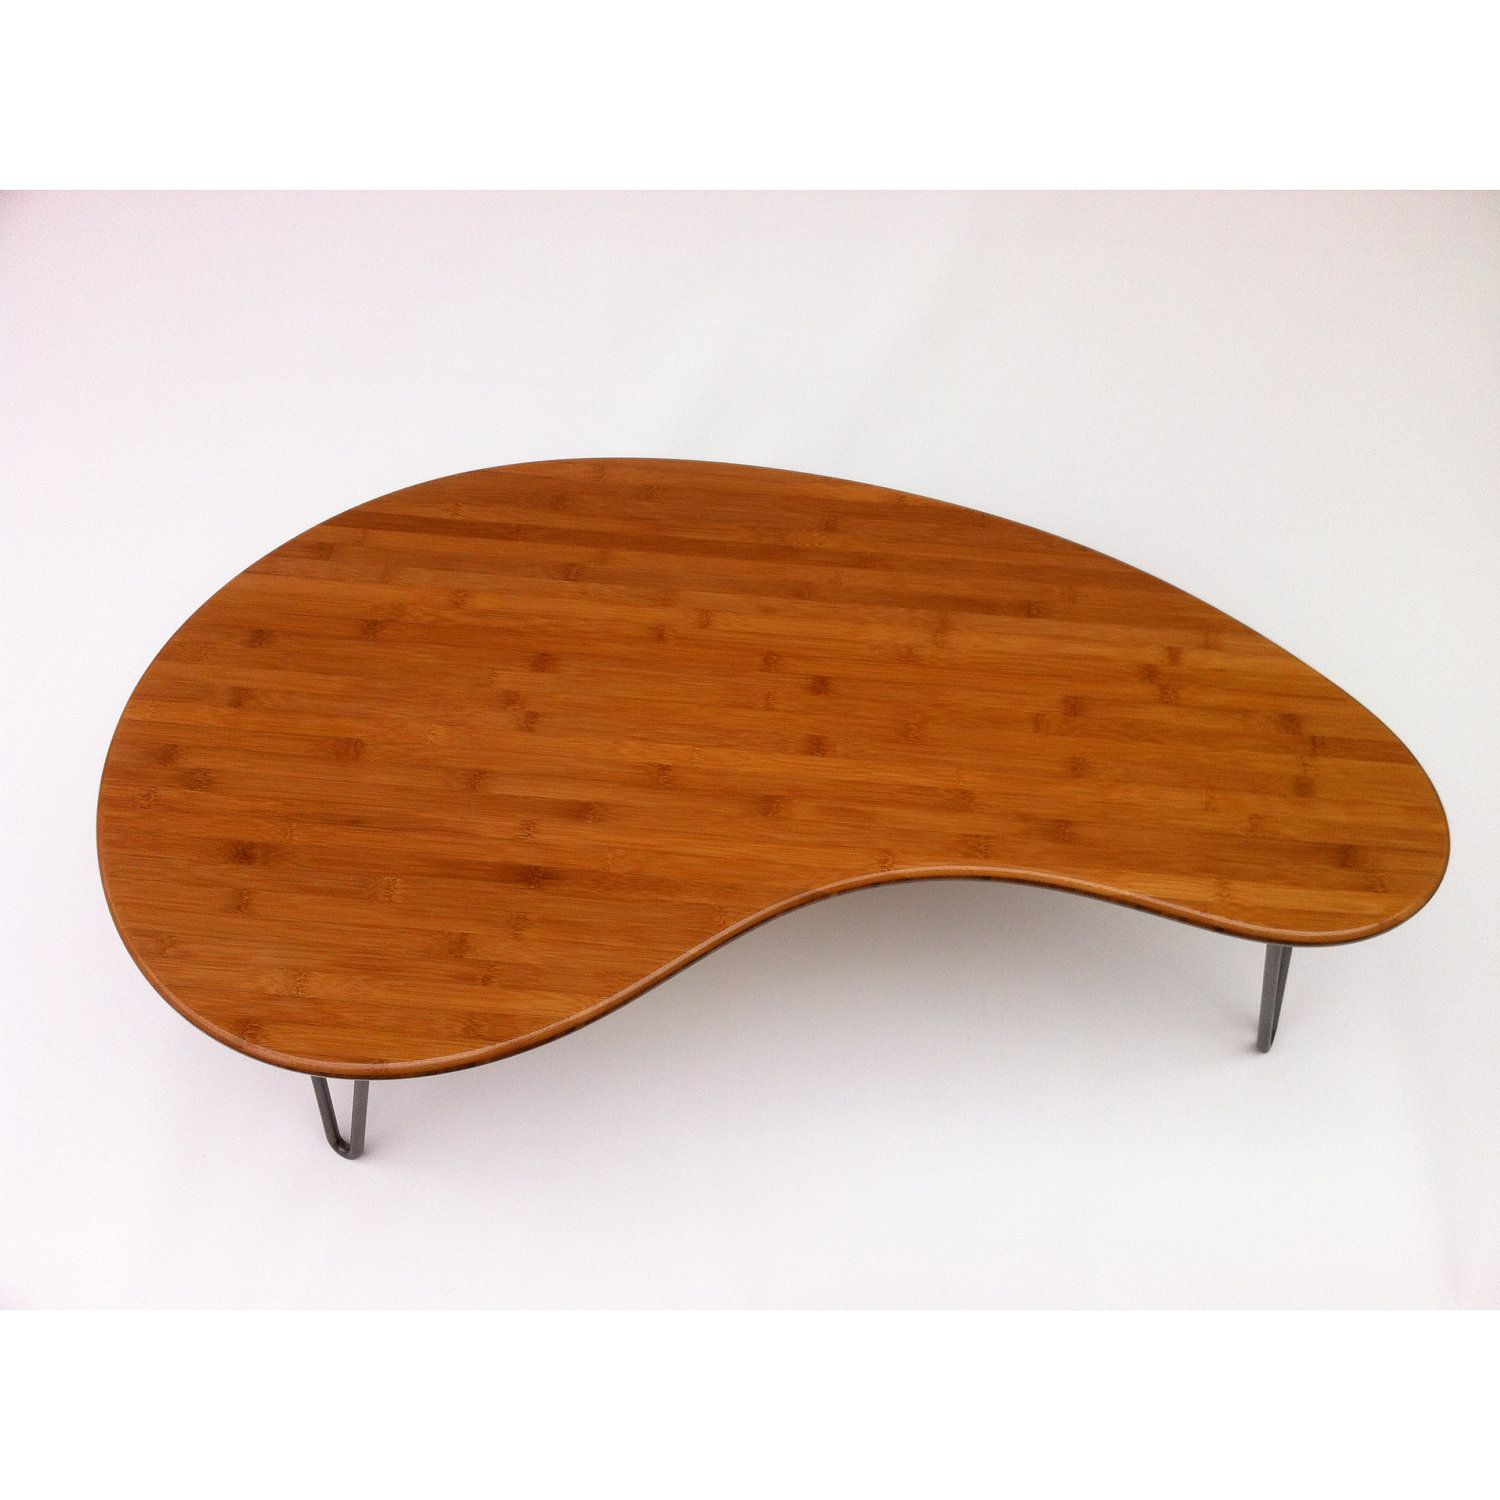 Mid century modern coffee table kidney bean shaped atomic era mid century modern coffee table kidney bean shaped atomic era boomerang design in caramelized geotapseo Choice Image